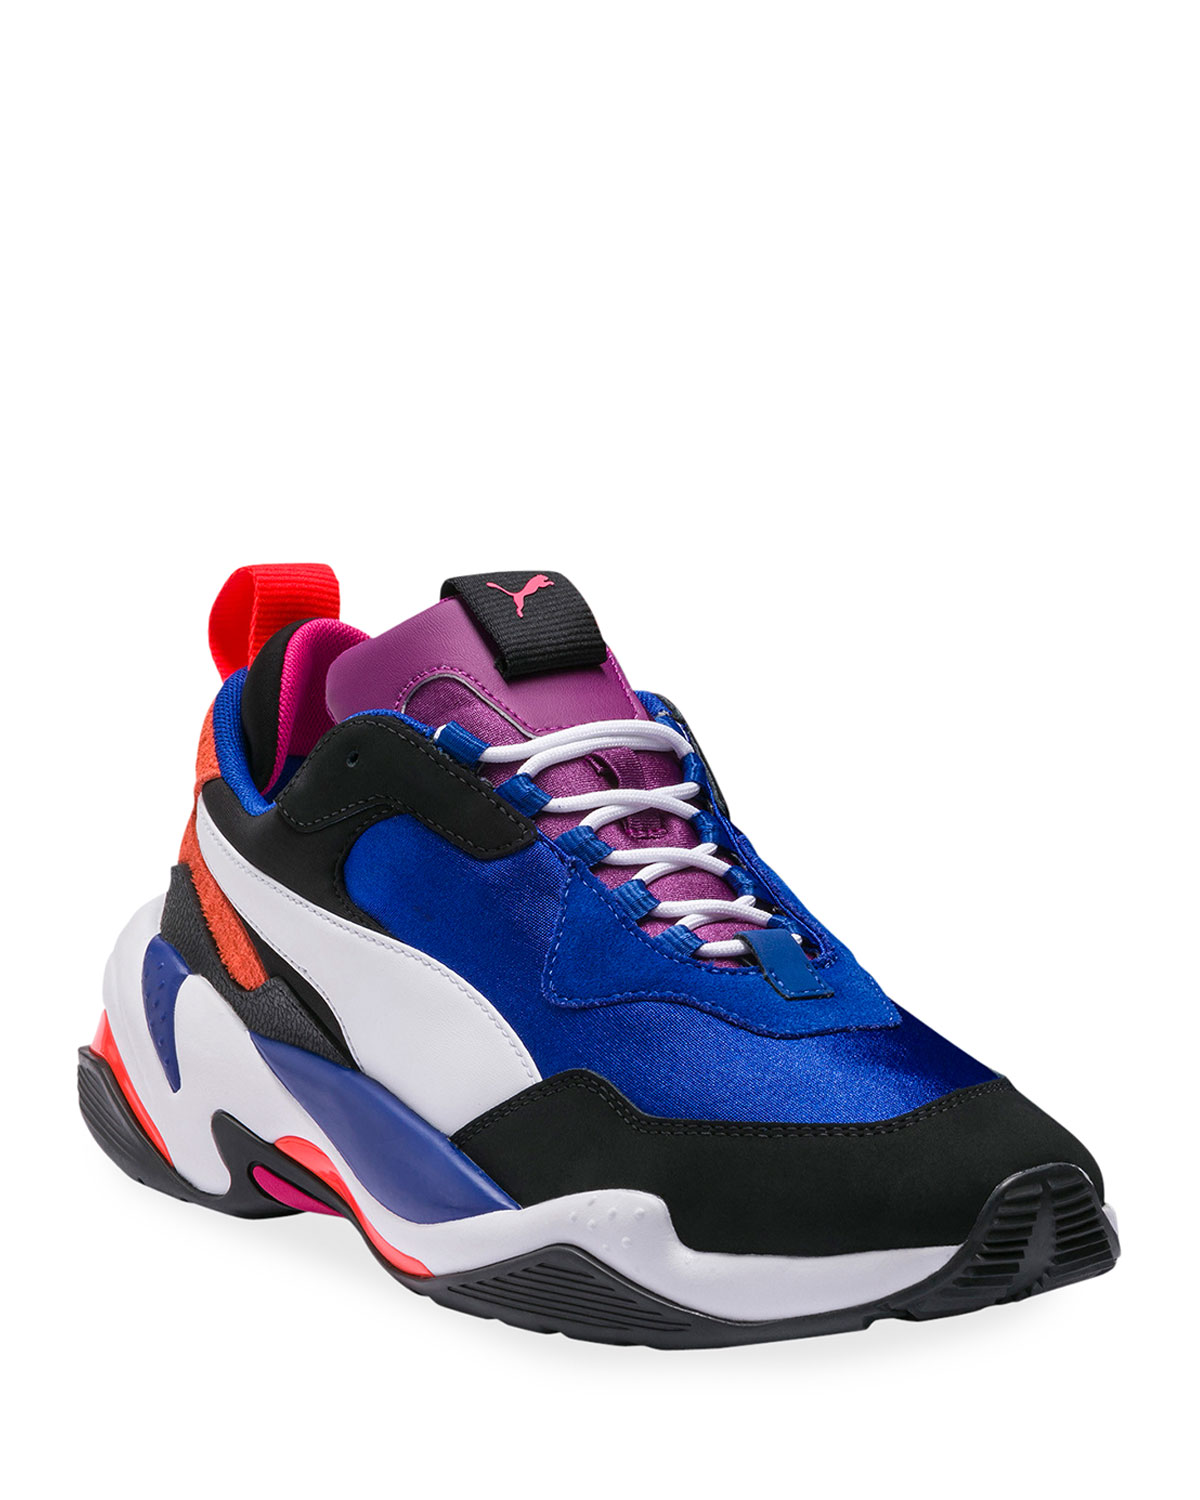 Puma Men s Thunder 4 Life Leather Trainer Sneakers  eaa623258